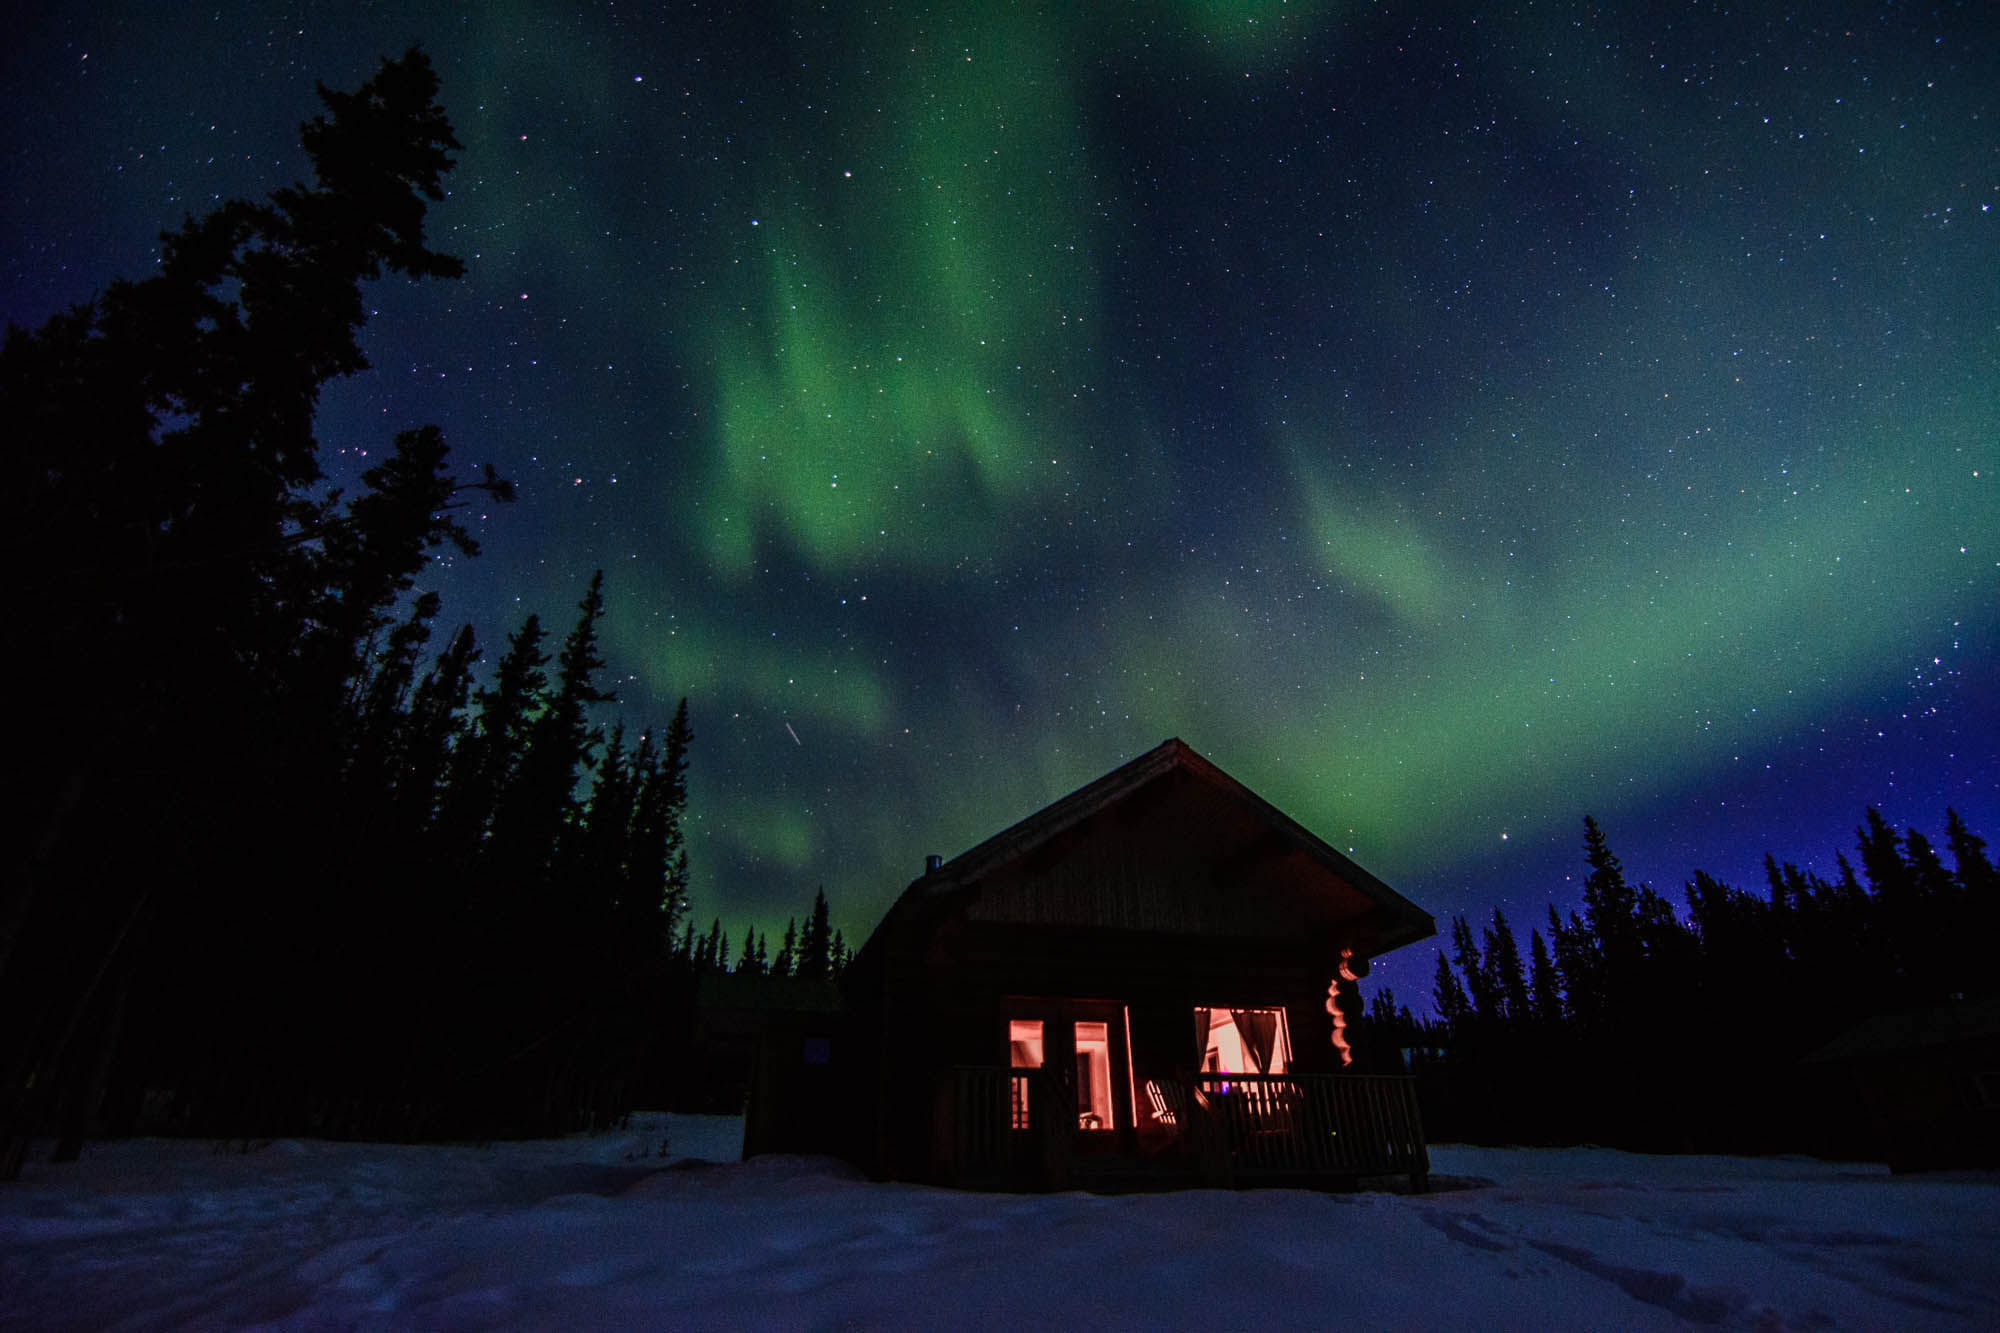 The Road Les Traveled captures the northern lights in yukon, canada